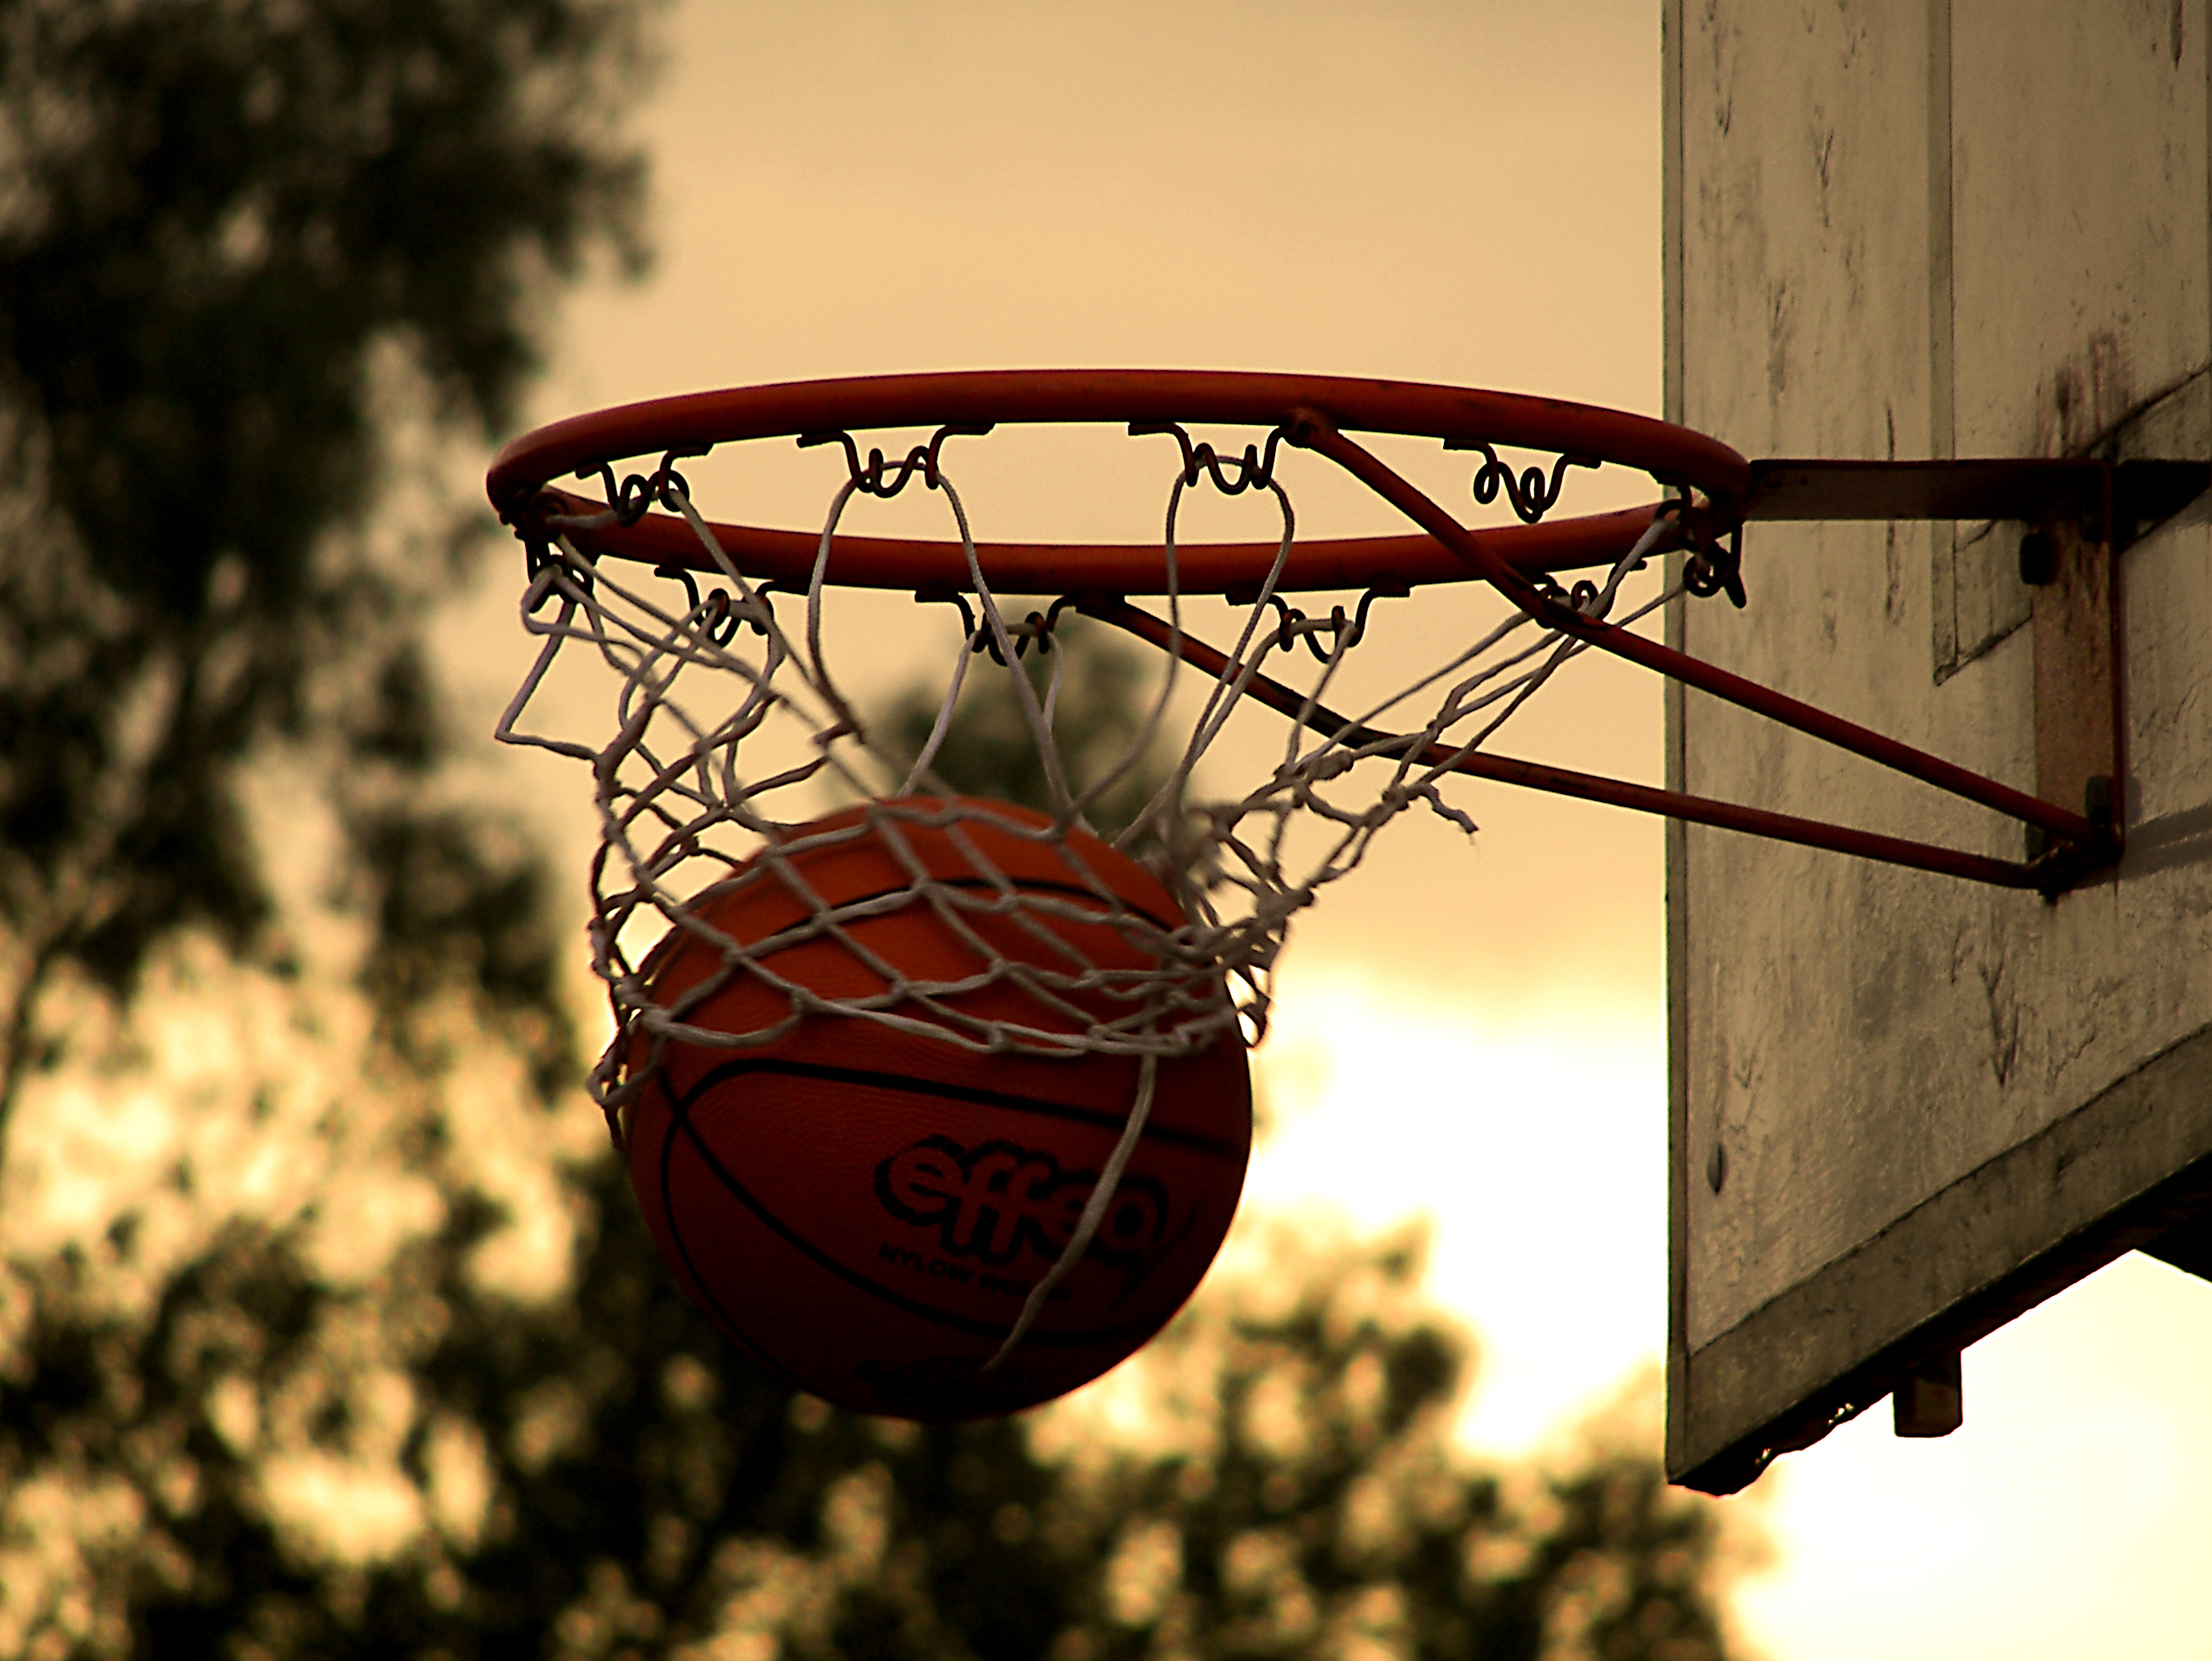 Image De Basket file:basket - wikimedia commons